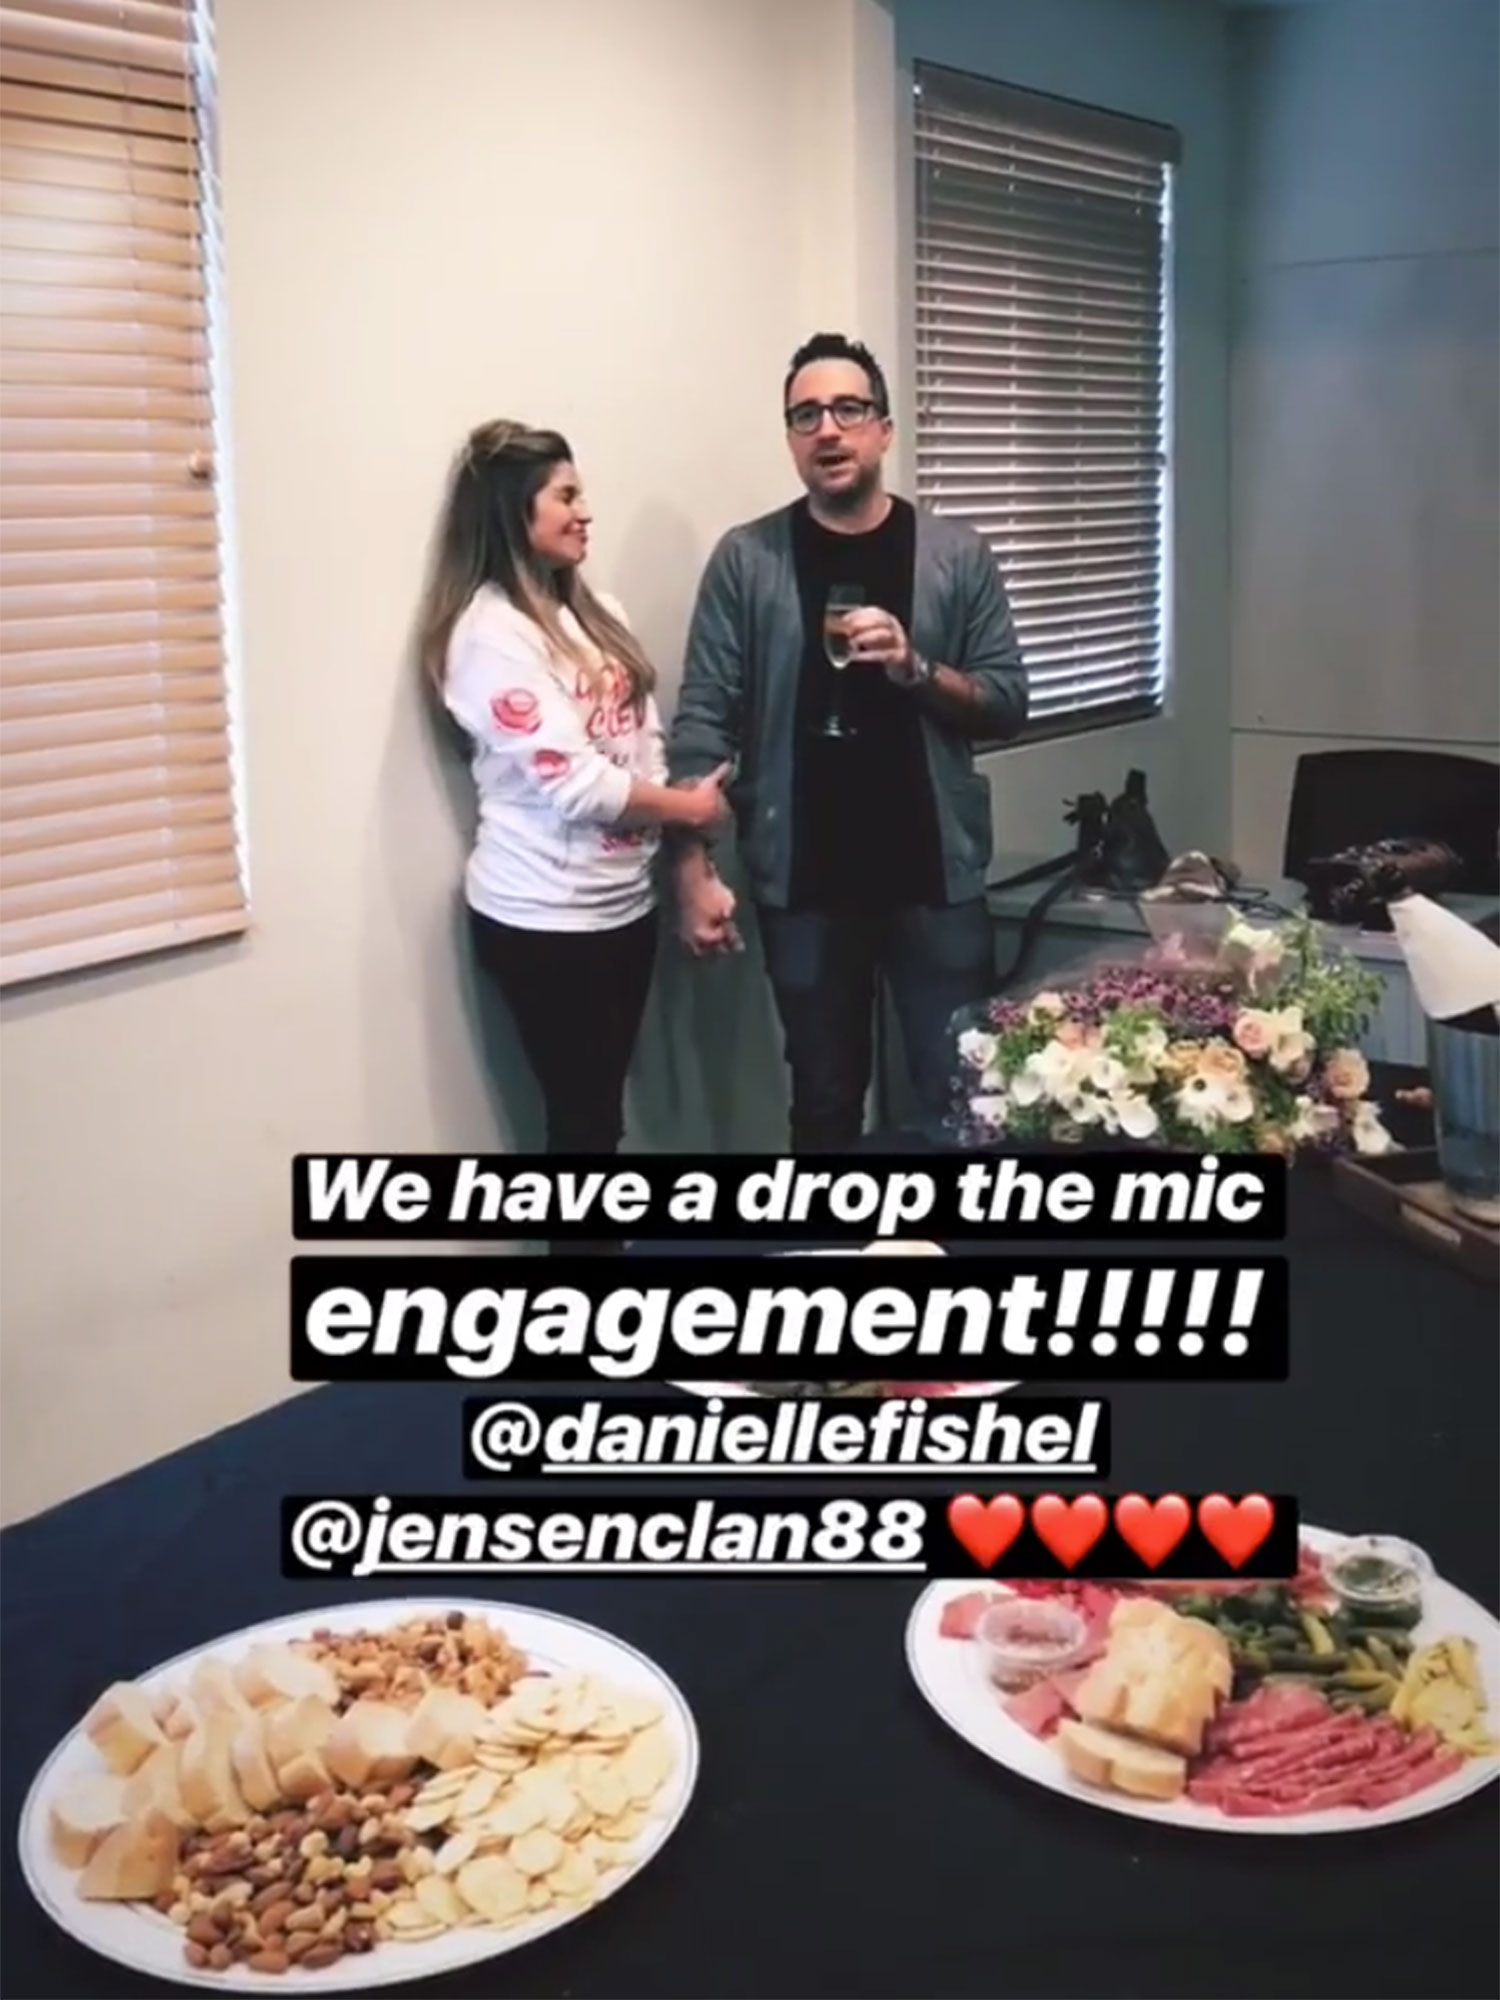 danielle-fishel-engaged-2